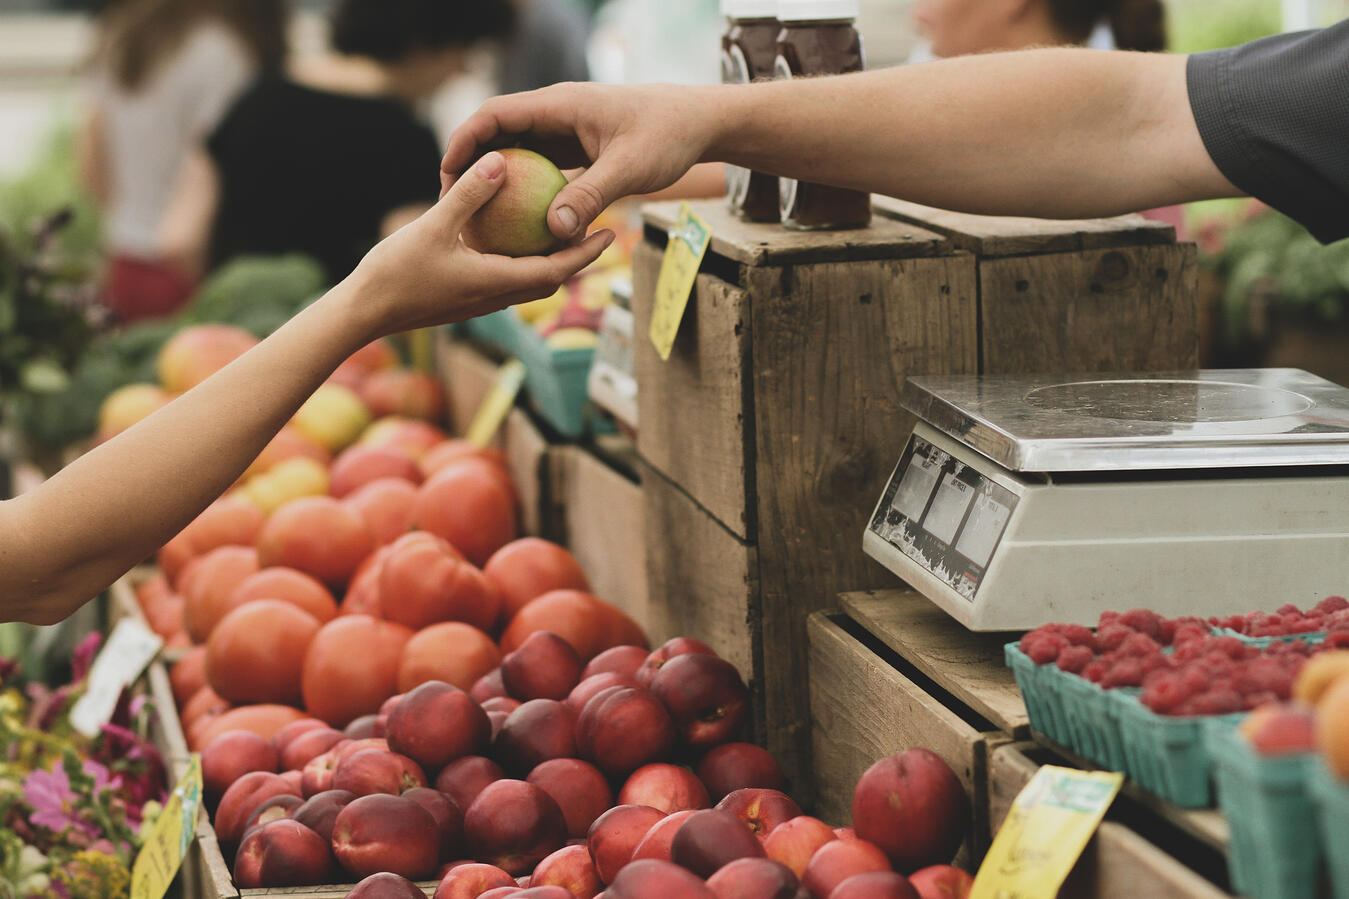 A picture of a customer being handed an apple at a farmers' market stand.